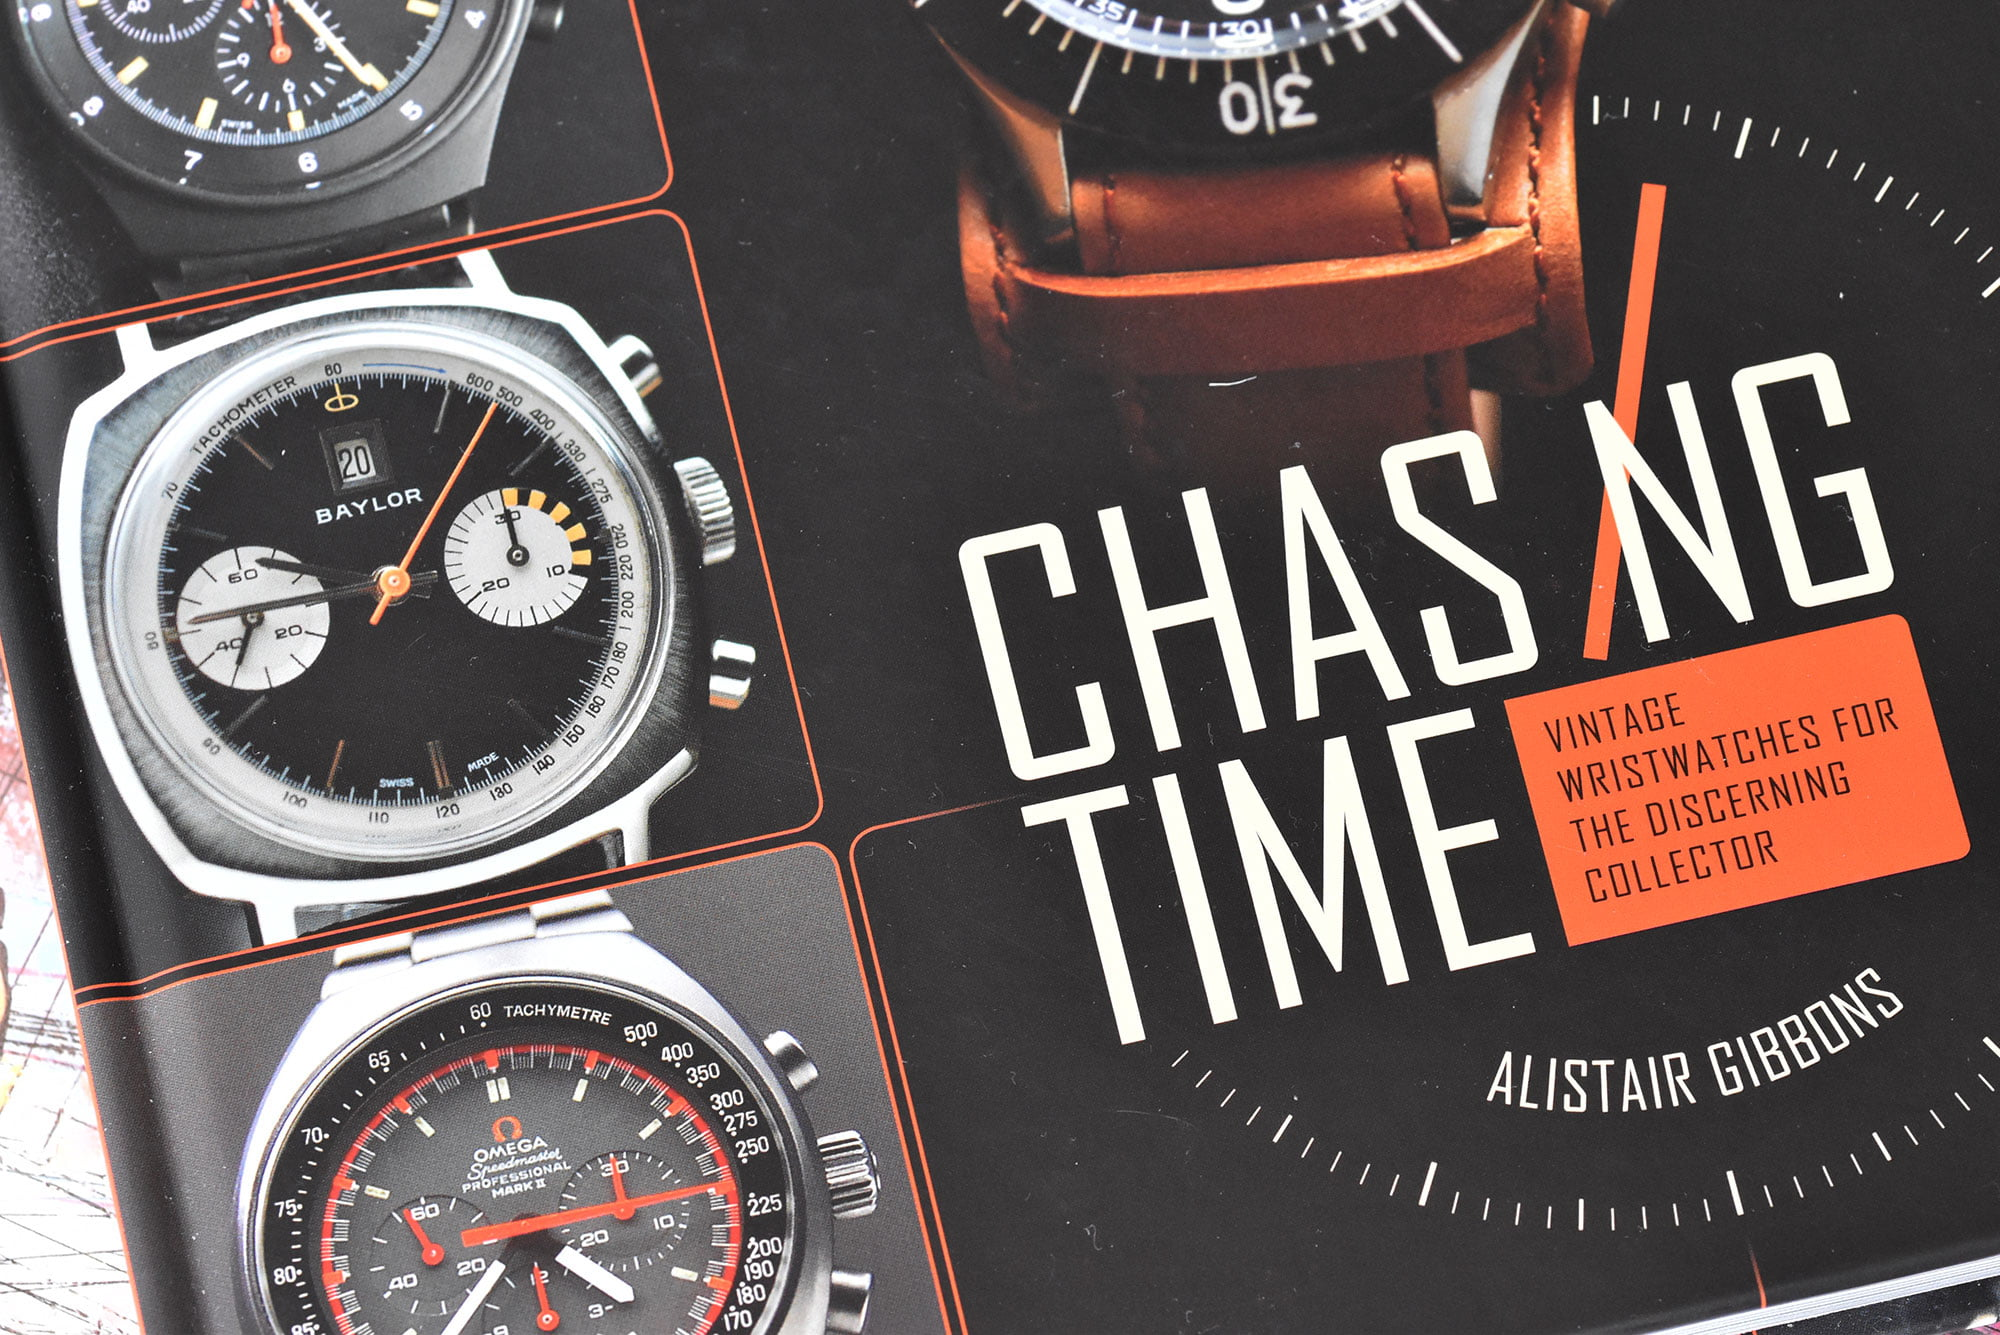 Chasing Time: Vintage Wristwatches for the Discerning Collector Review